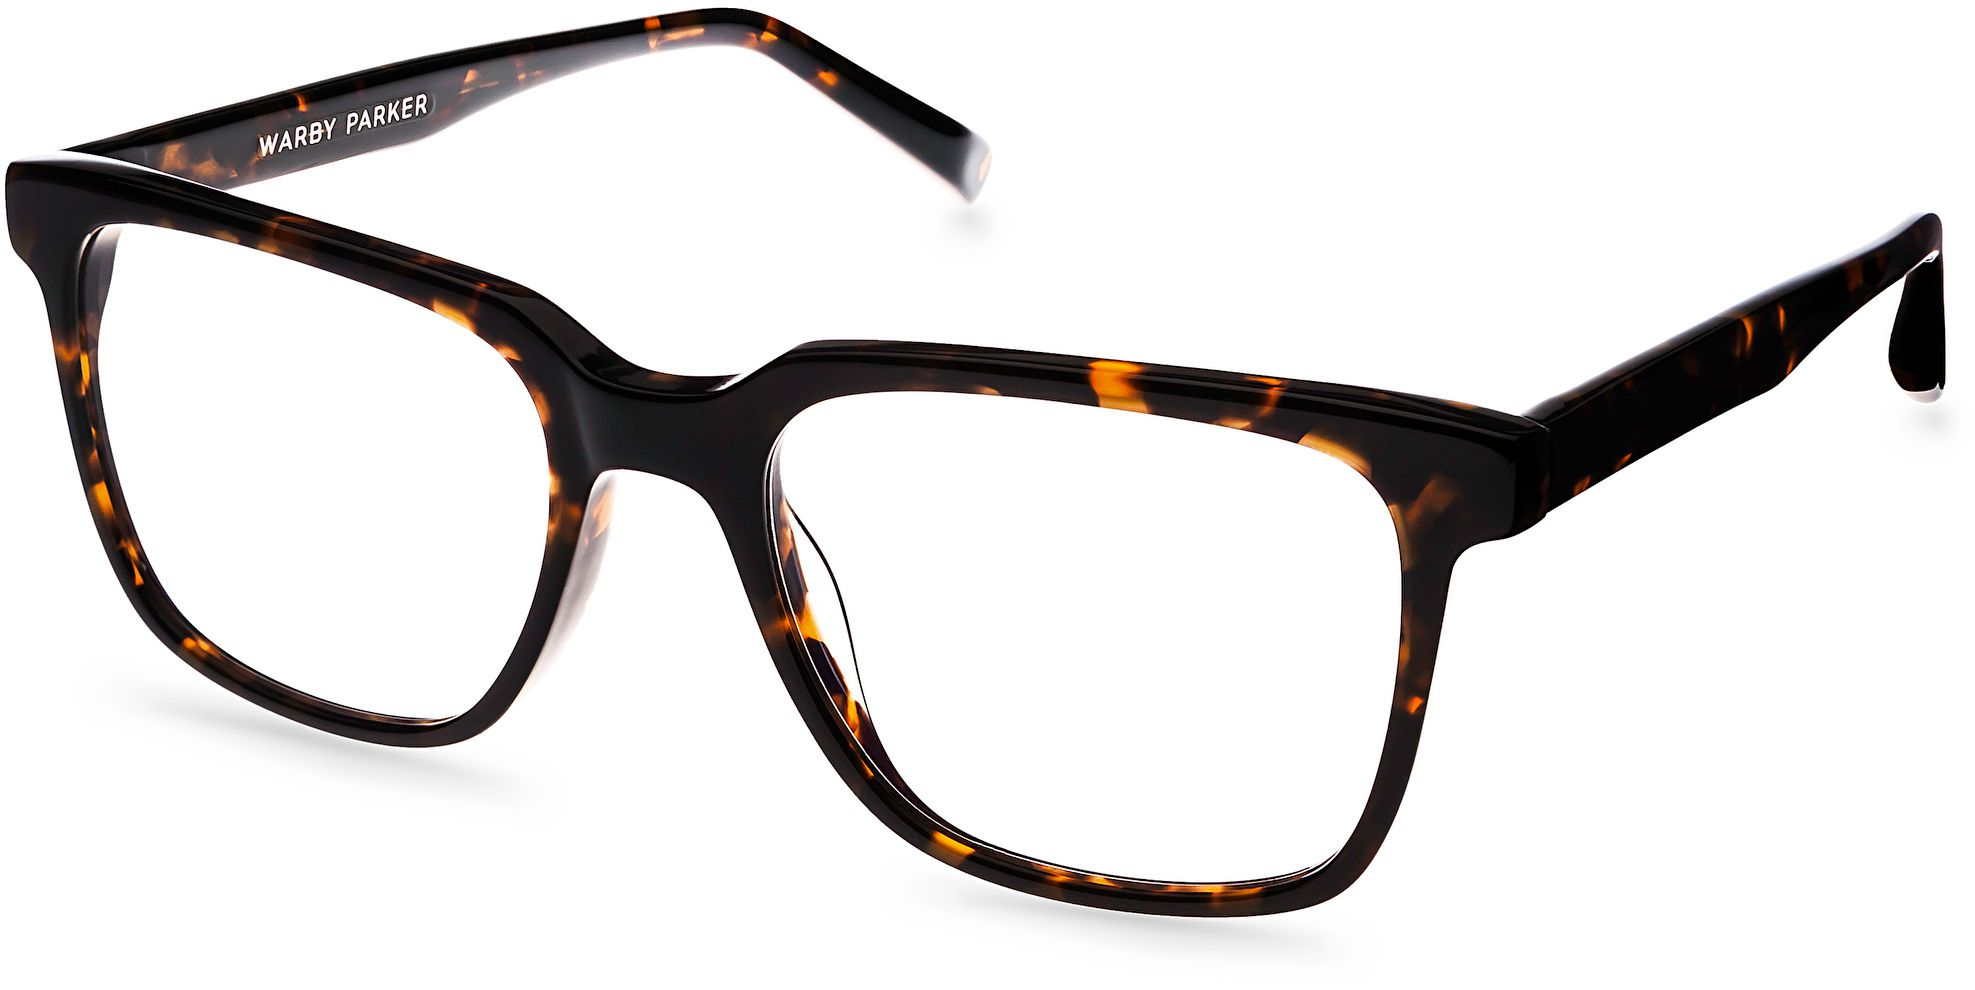 Chamberlain Eyeglasses in Whiskey Tortoise for Women | Warby Parker